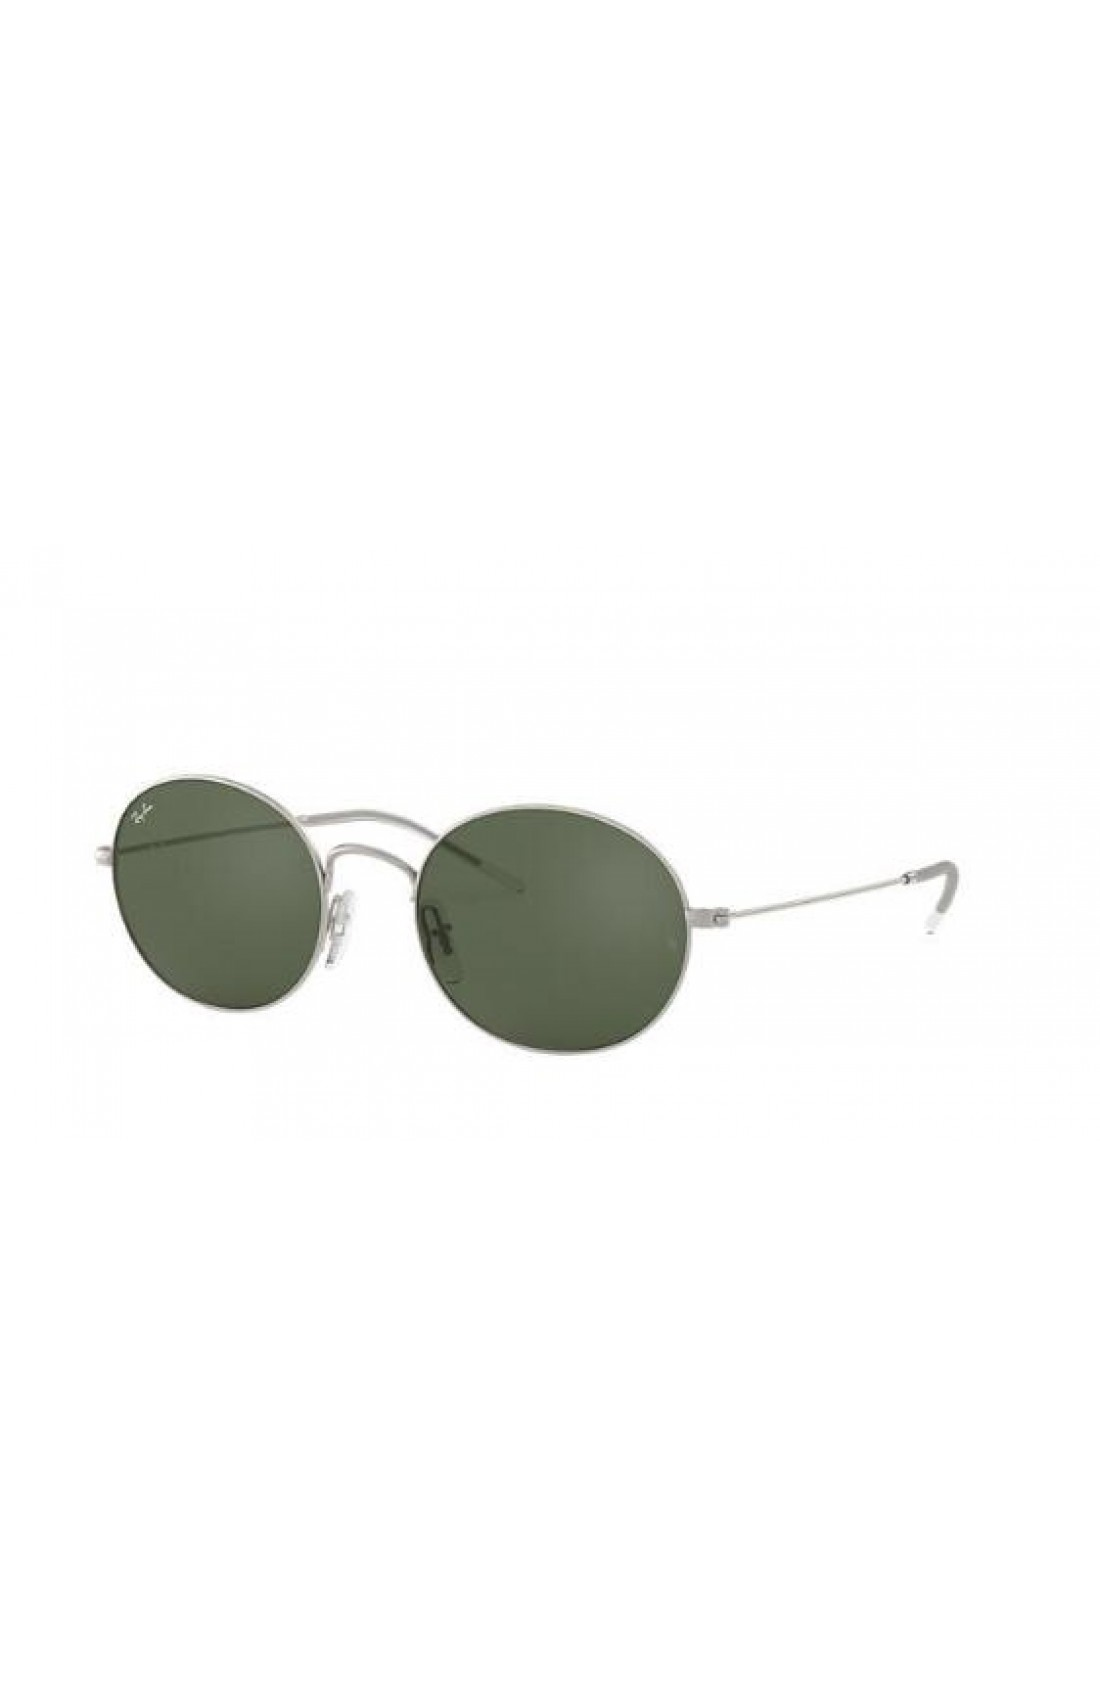 knock off ray ban beat rb3594 sunglasses silver frame green classic lens